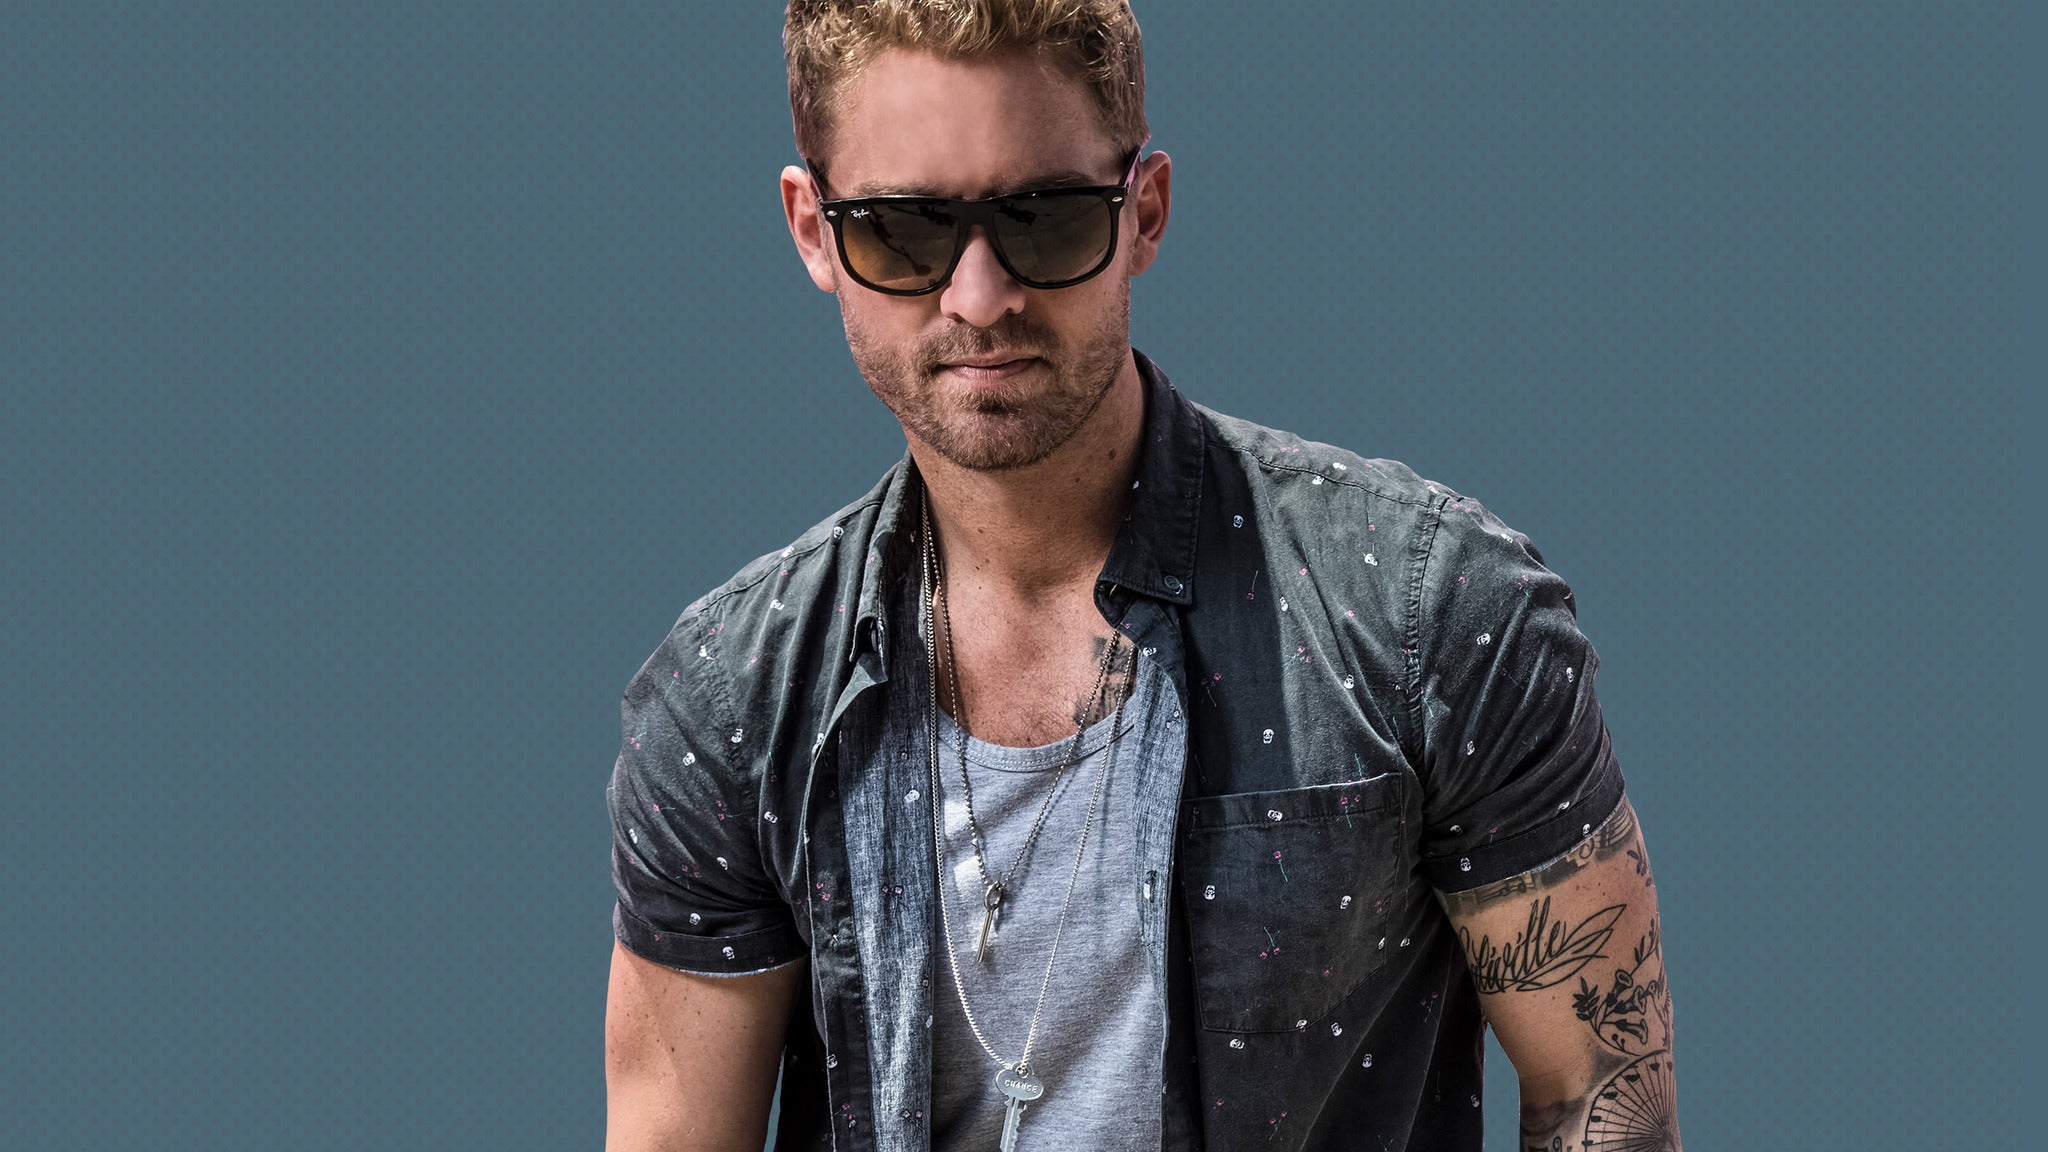 WXCY Presents Brett Young at The Queen